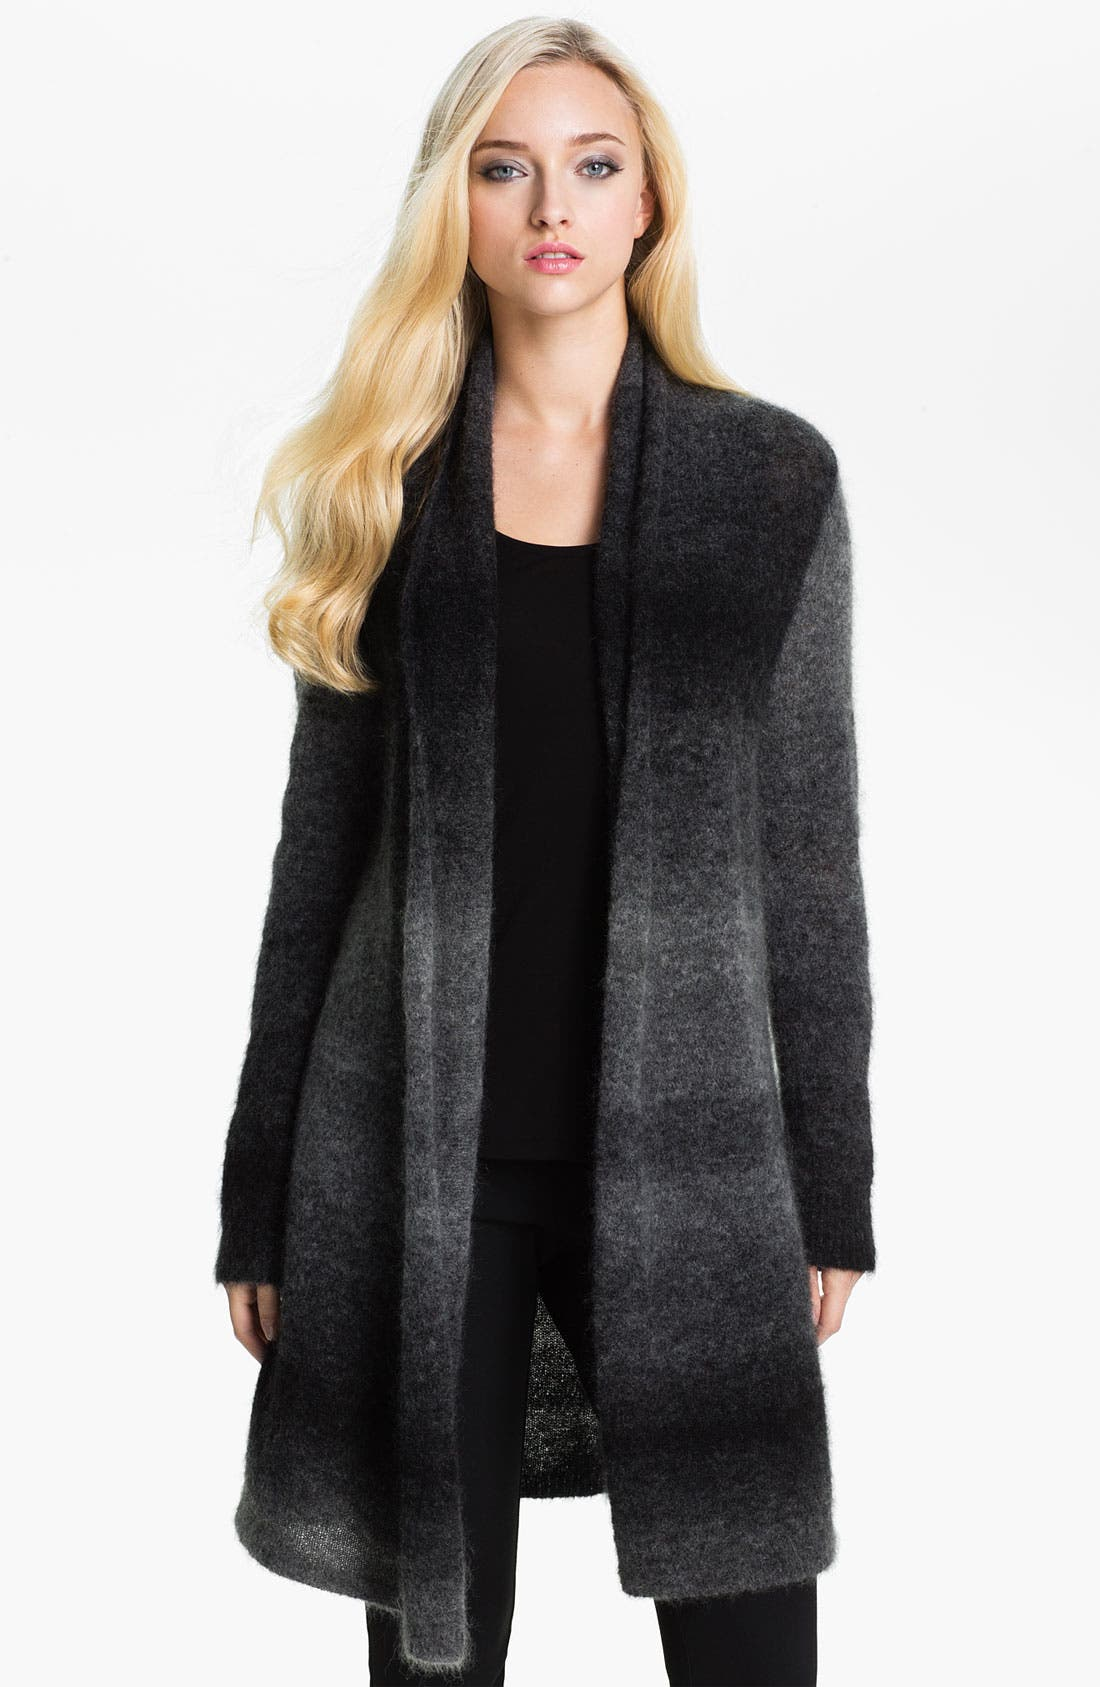 Alternate Image 1 Selected - Eileen Fisher Long Ombré Cardigan (Online Exclusive)